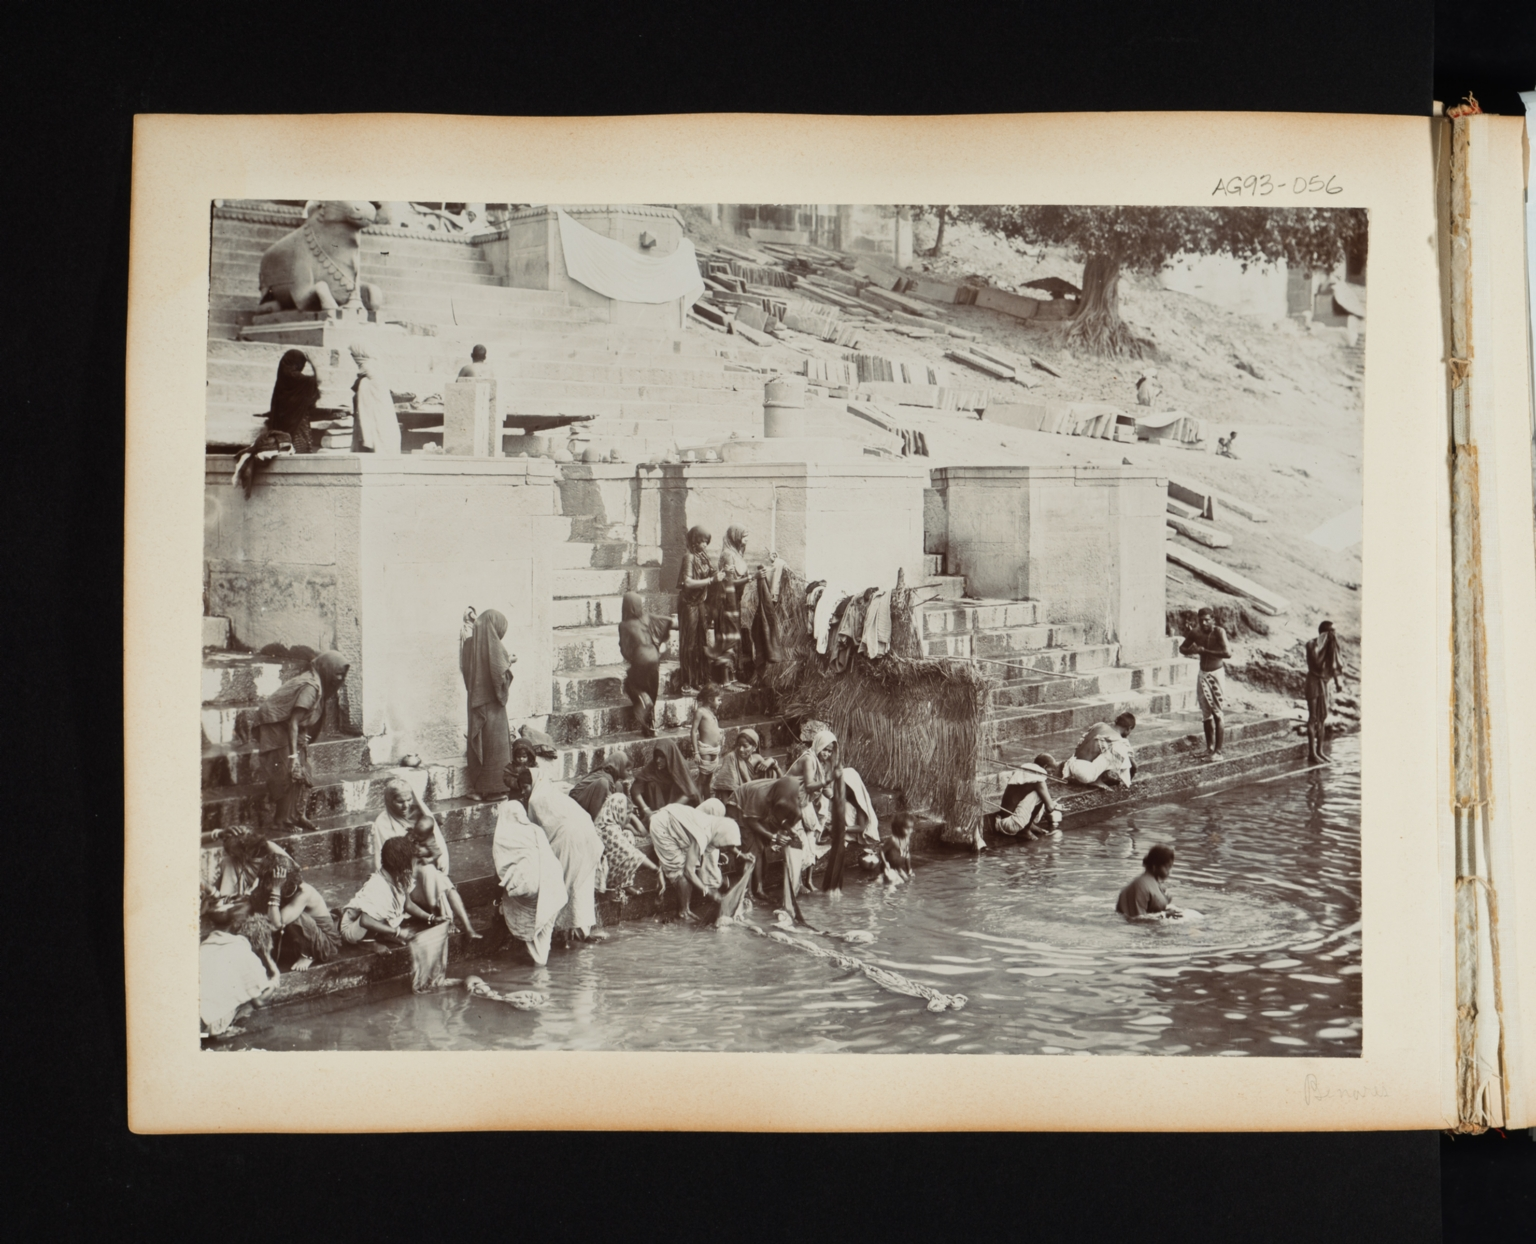 Bathing and Laundering in the Ganges River in India.